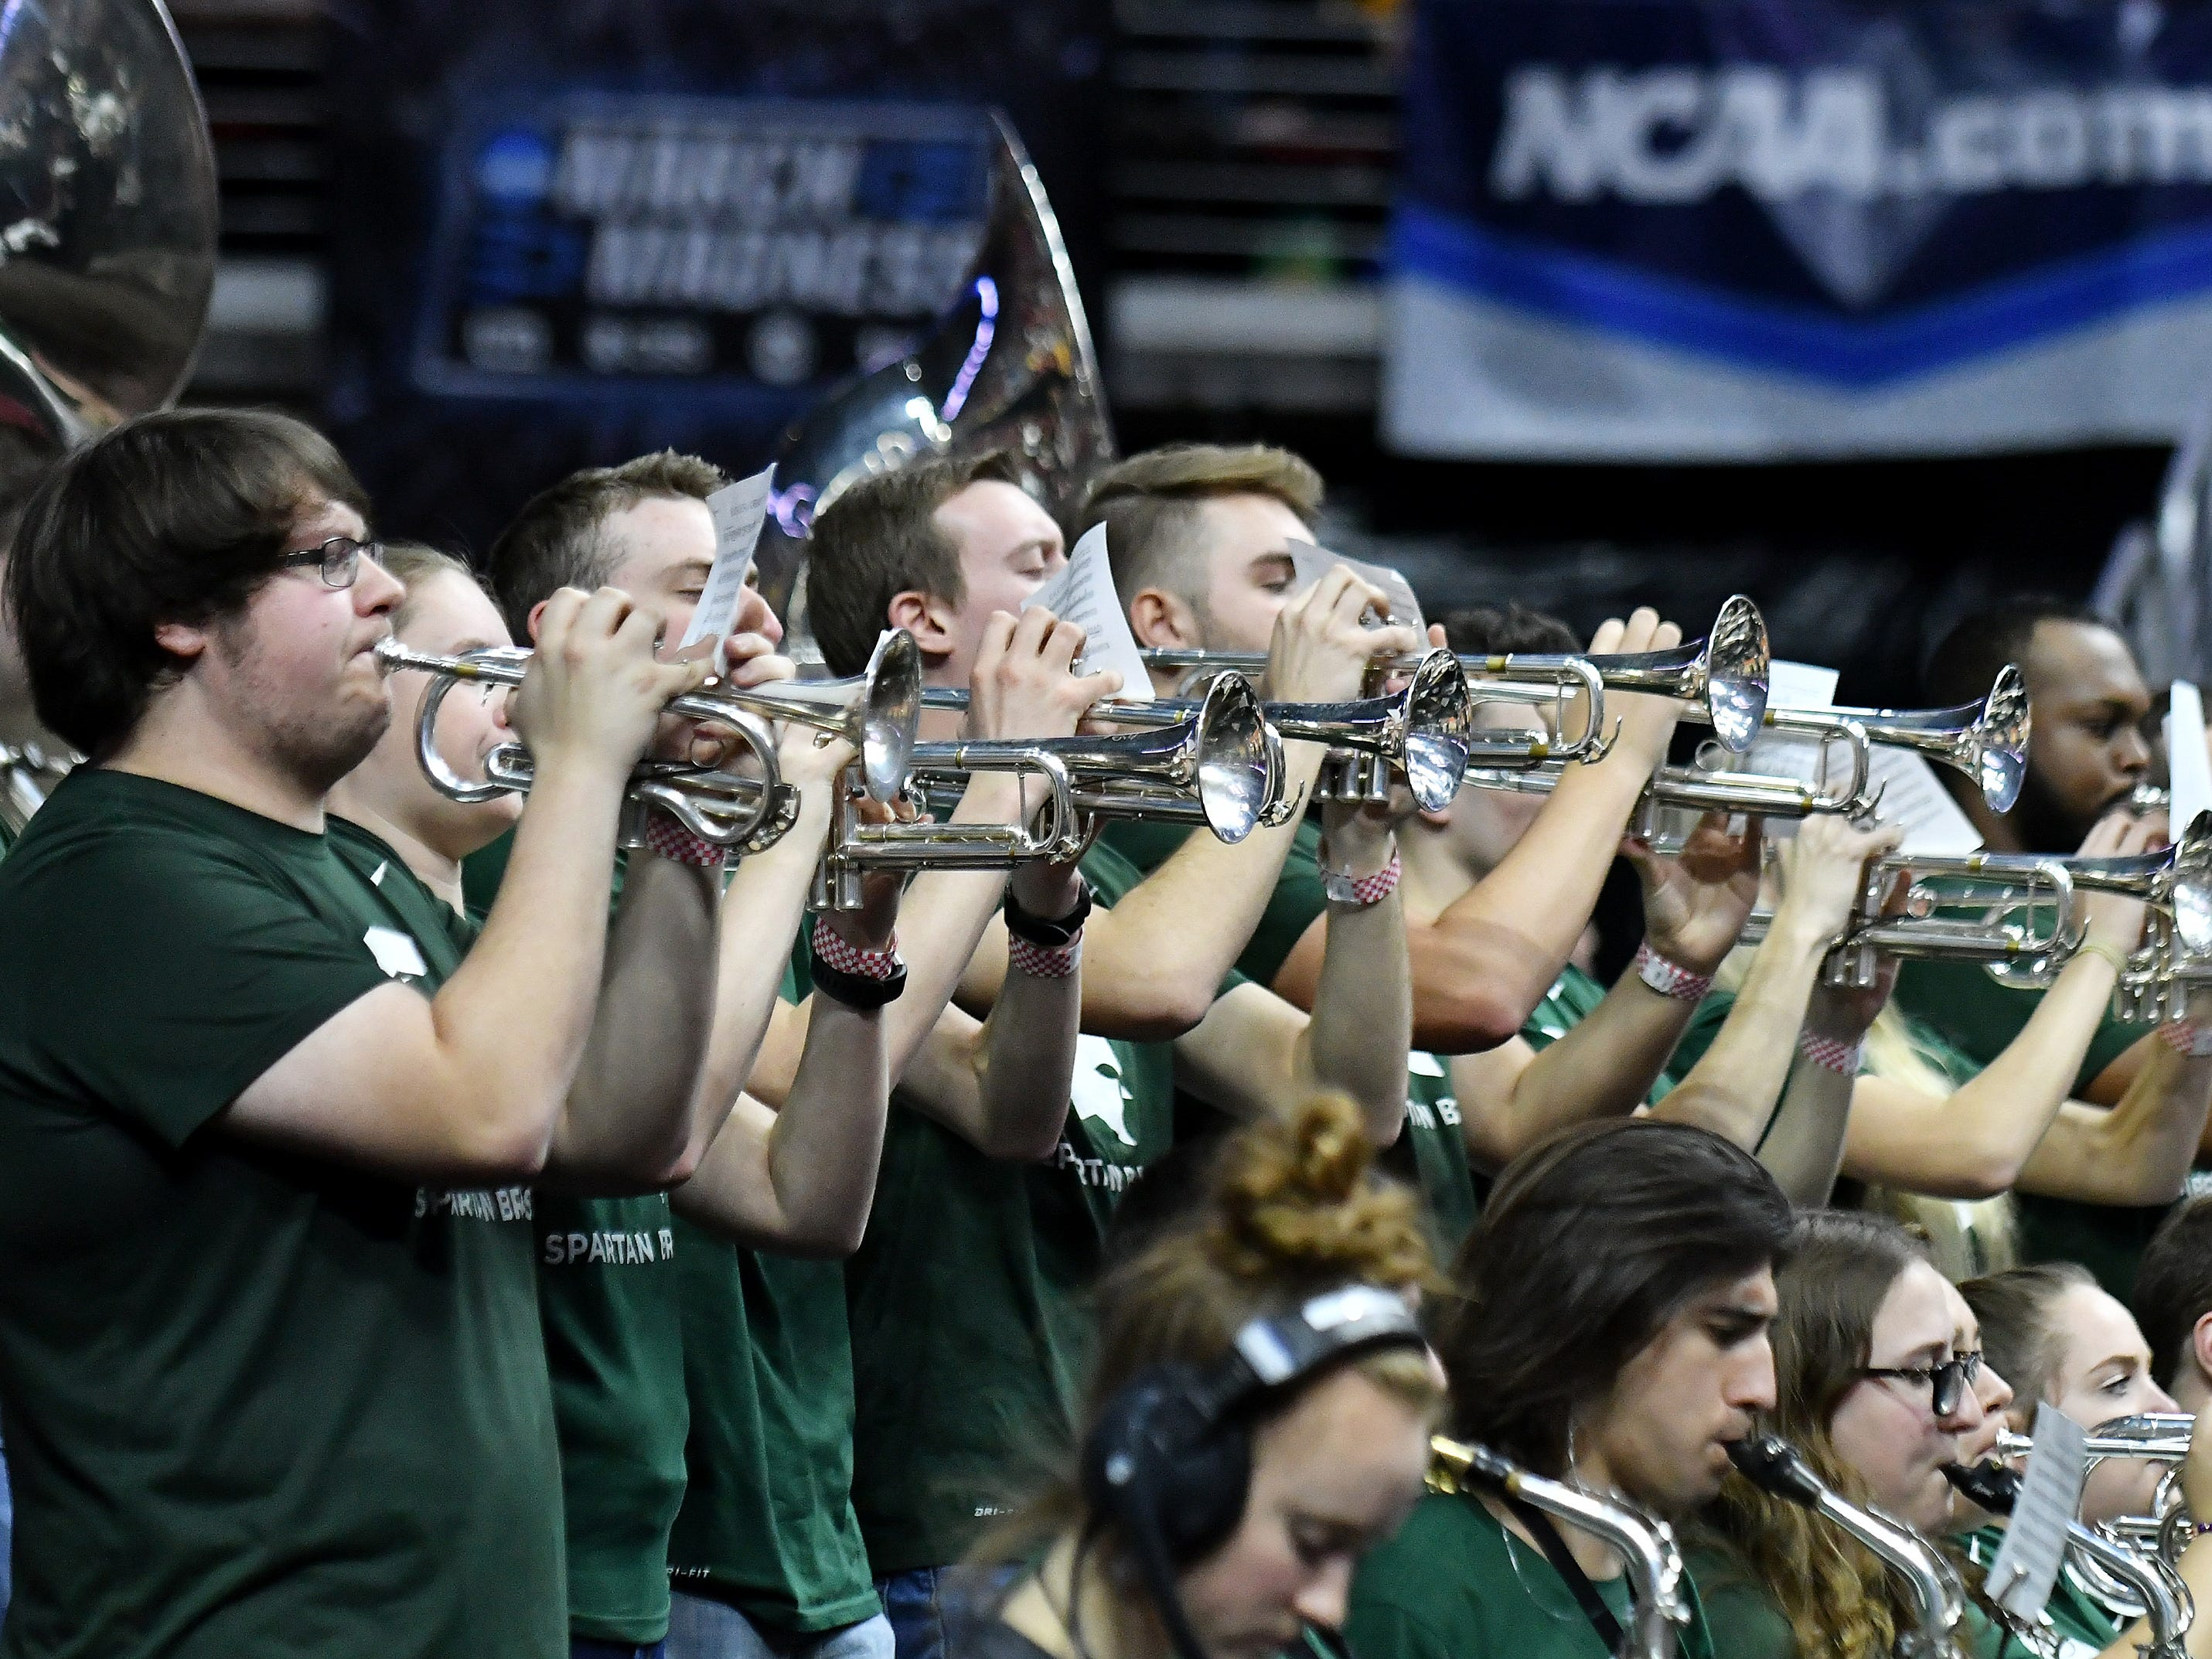 The Michigan State band plays during a time out in the second half.